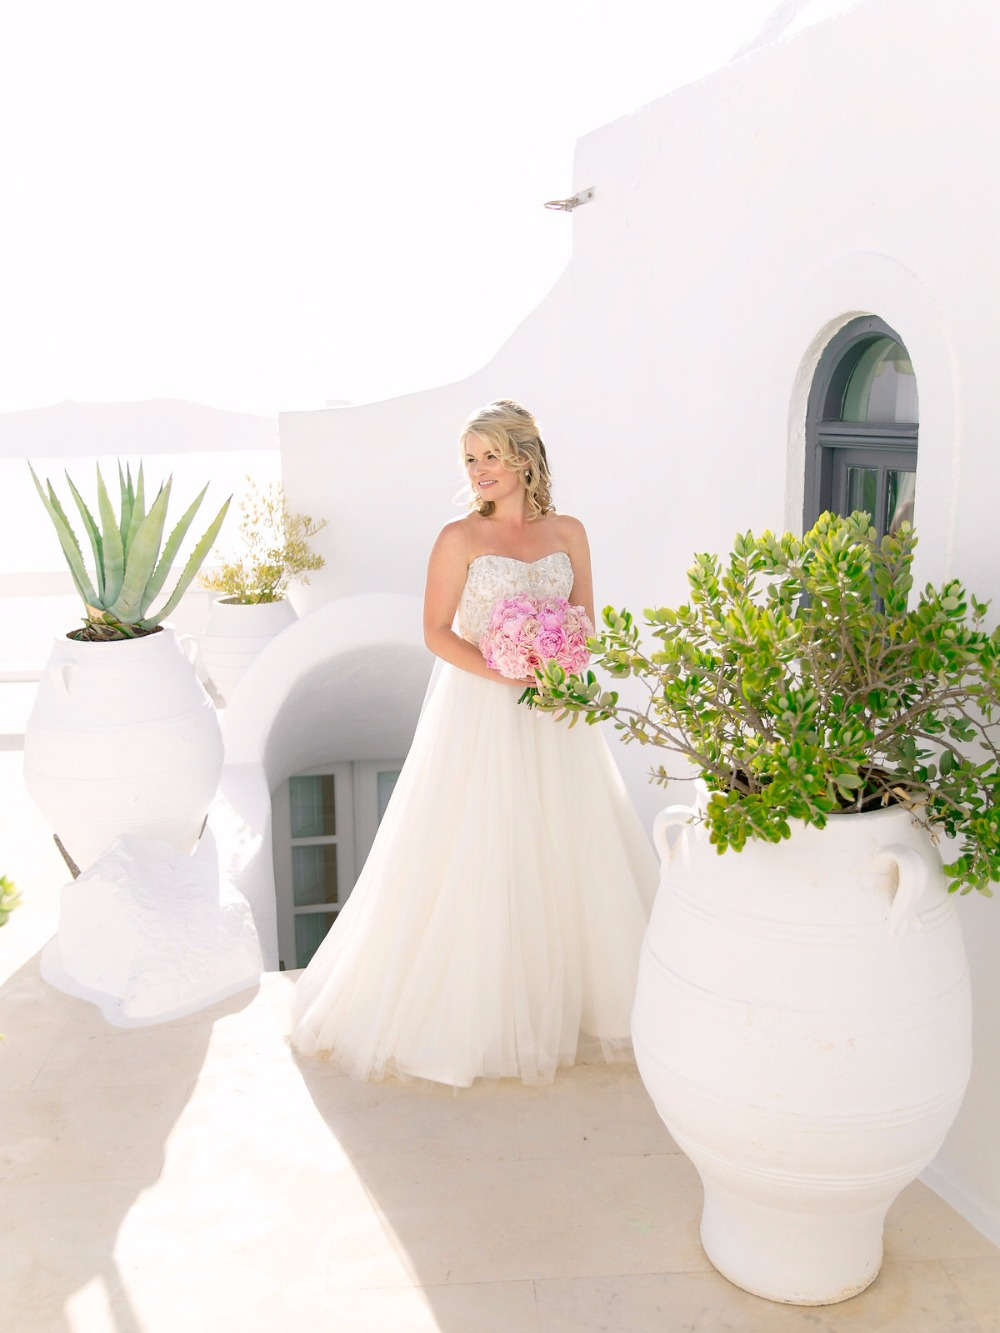 Gorgeous bridal look in Greece